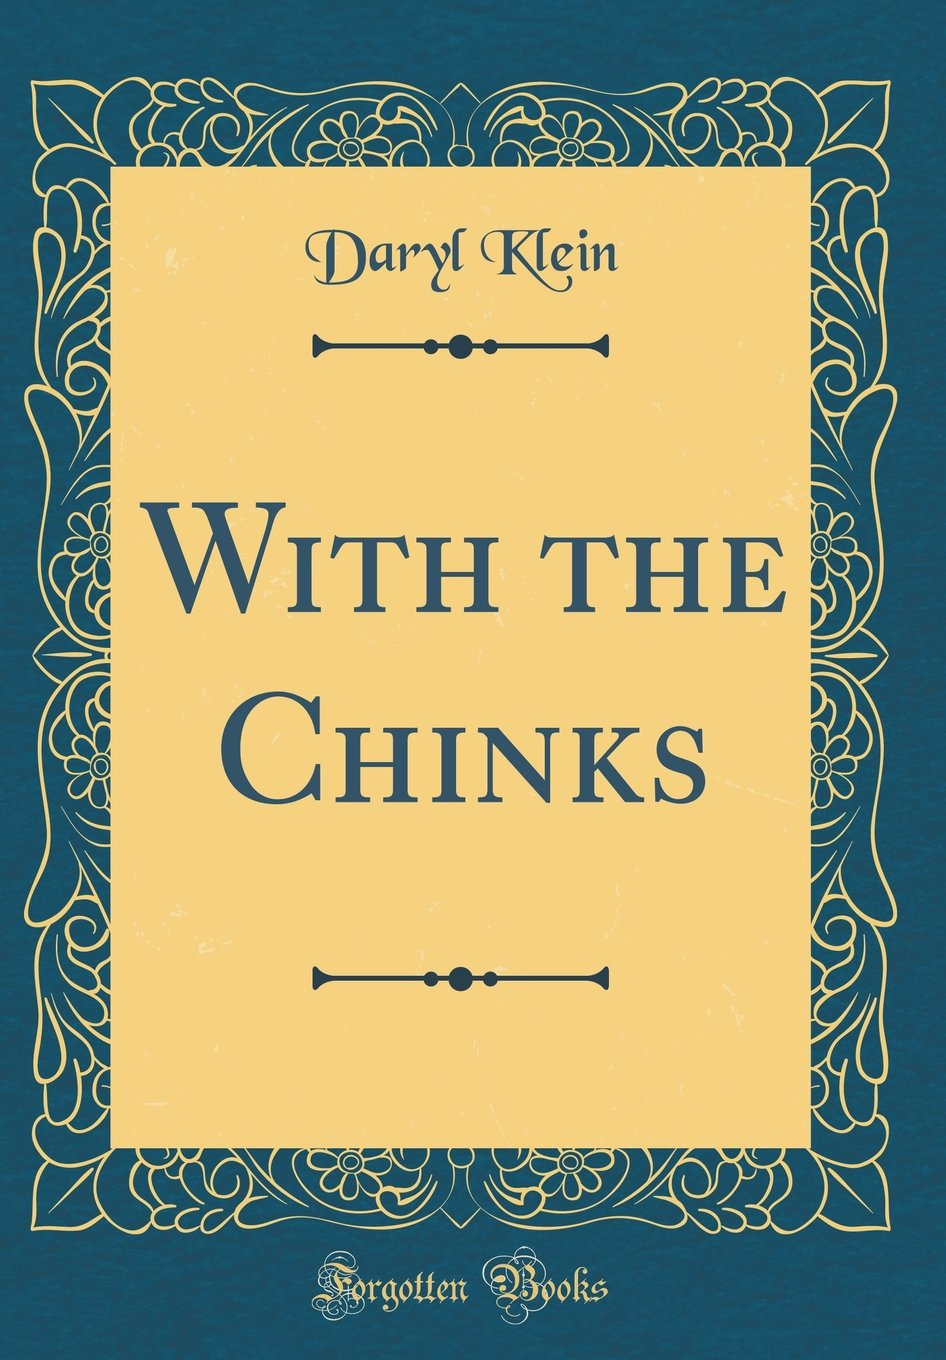 With the Chinks (Classic Reprint): Amazon.co.uk: Daryl Klein:  9780265744666: Books